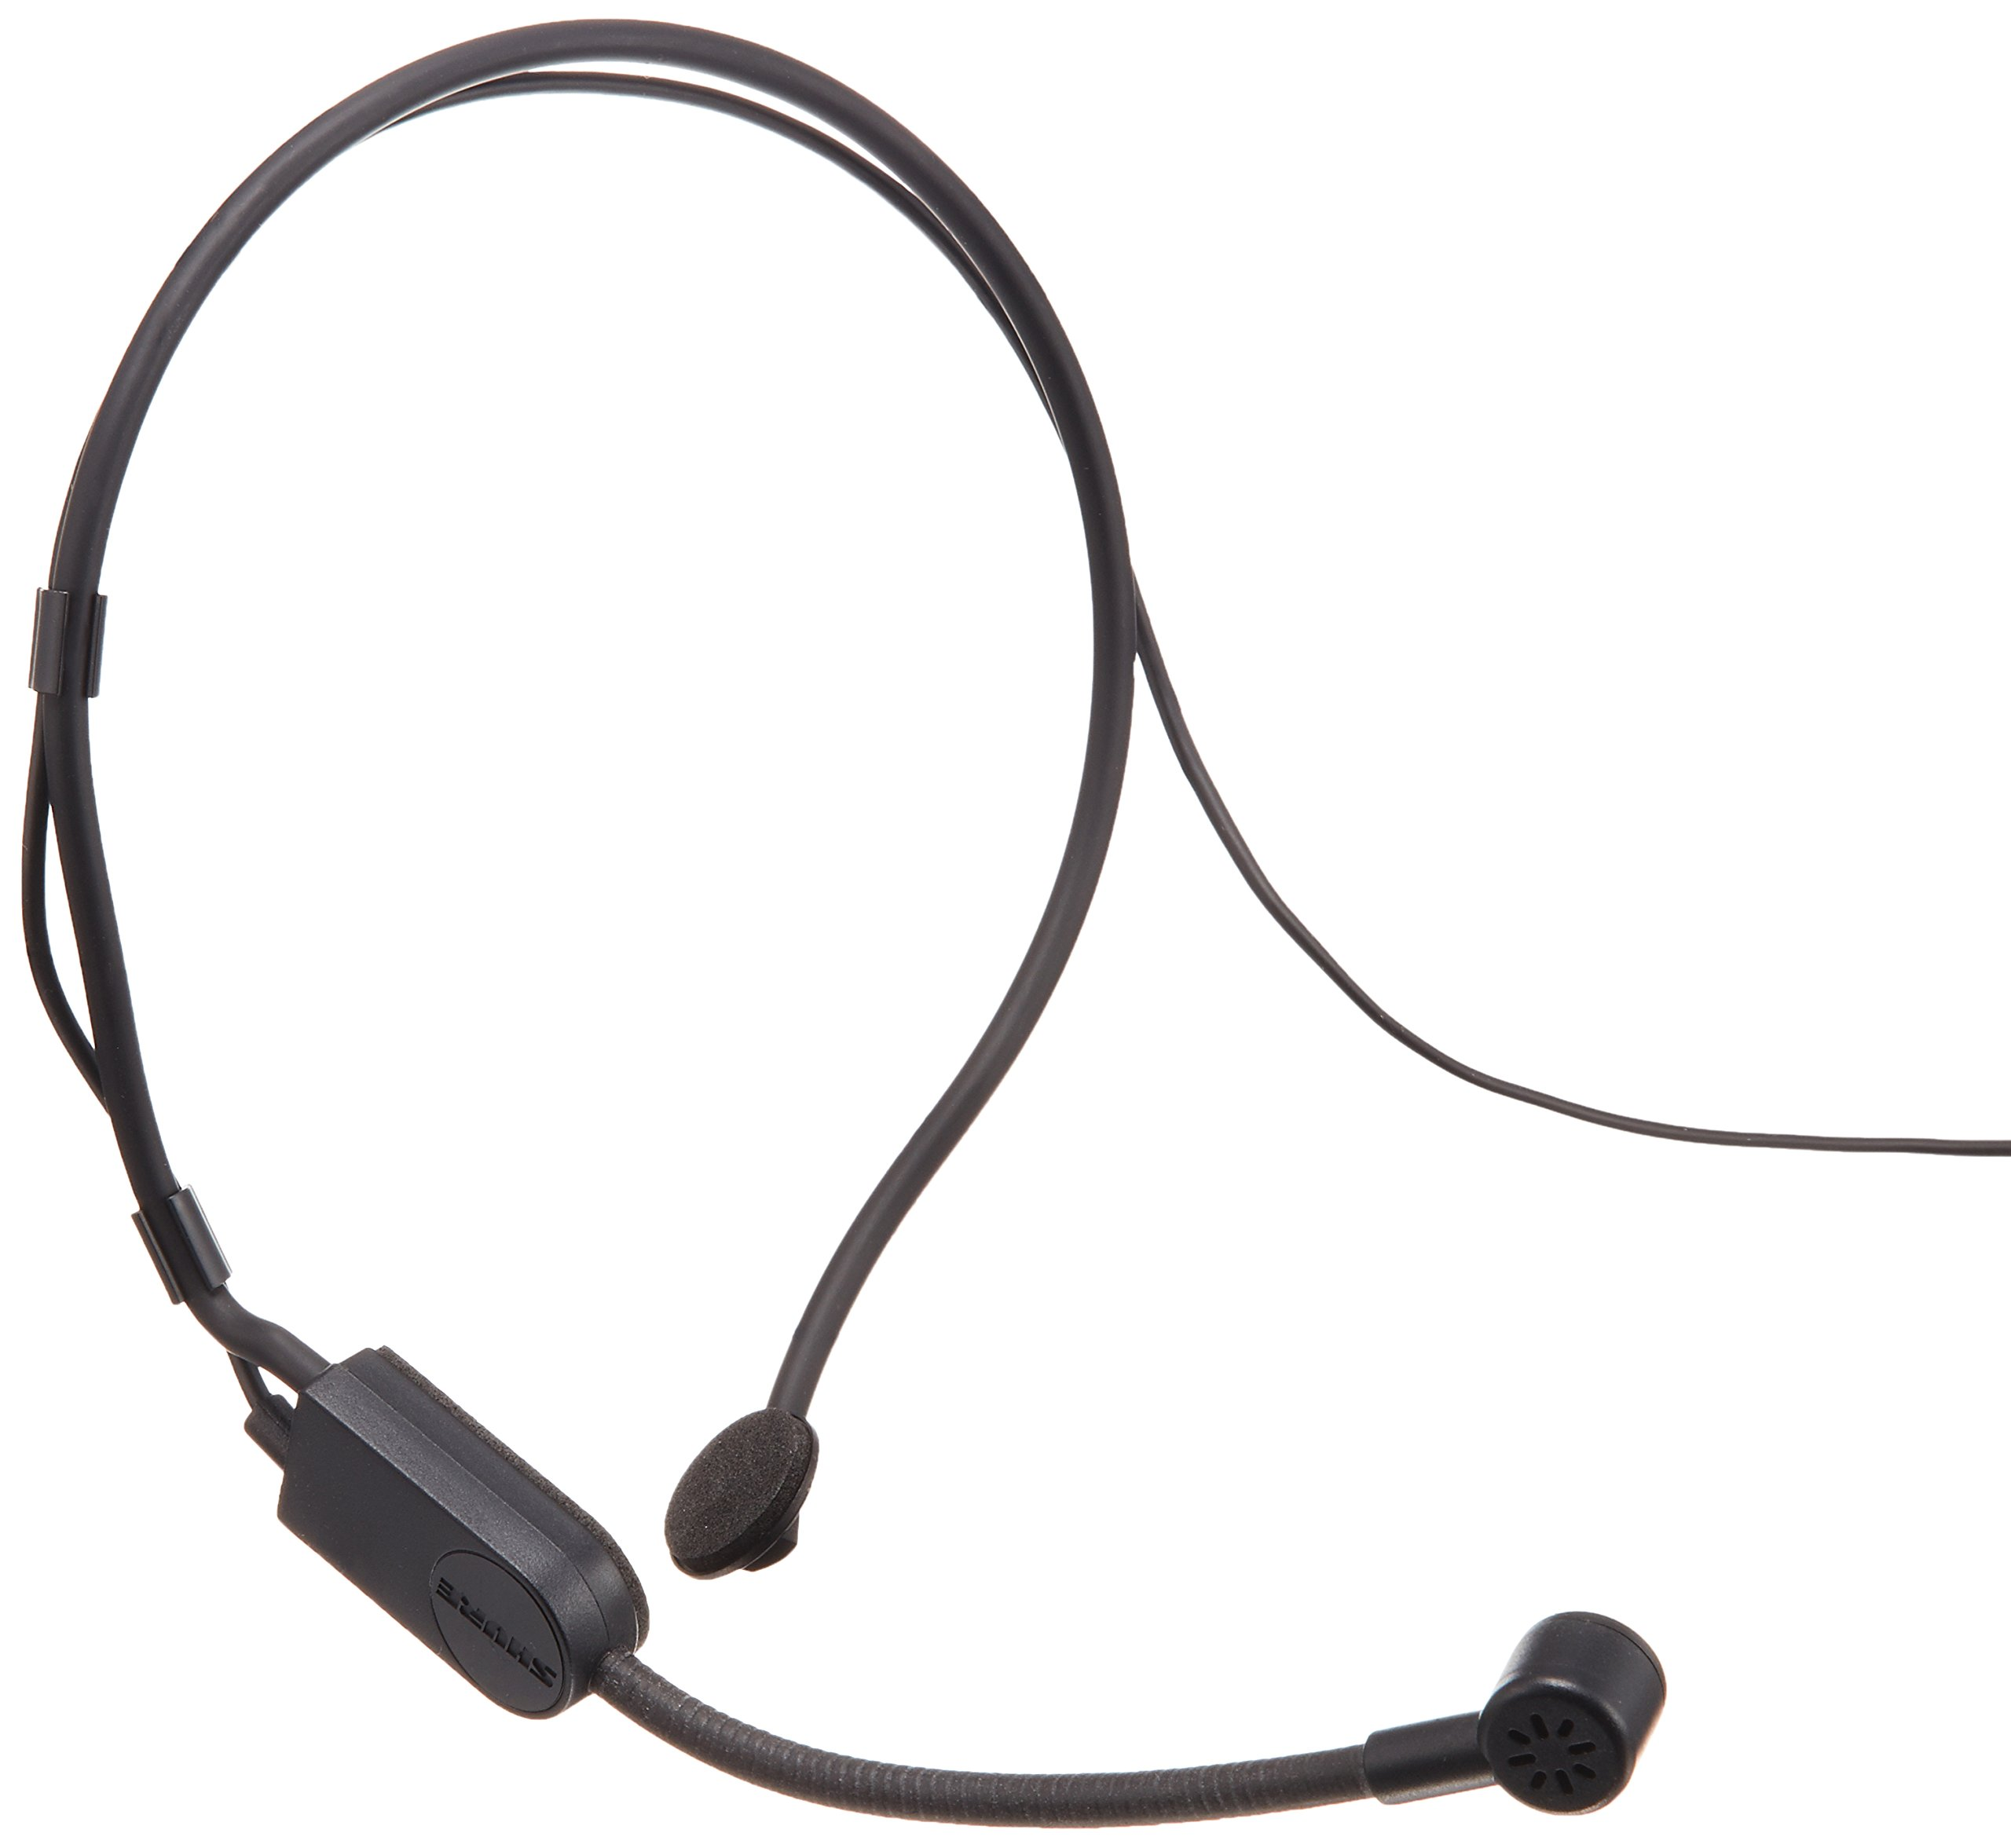 Shure PGA31 Headset Condenser Microphone with TA4F/TQG Connector for use with Shure Wireless Systems